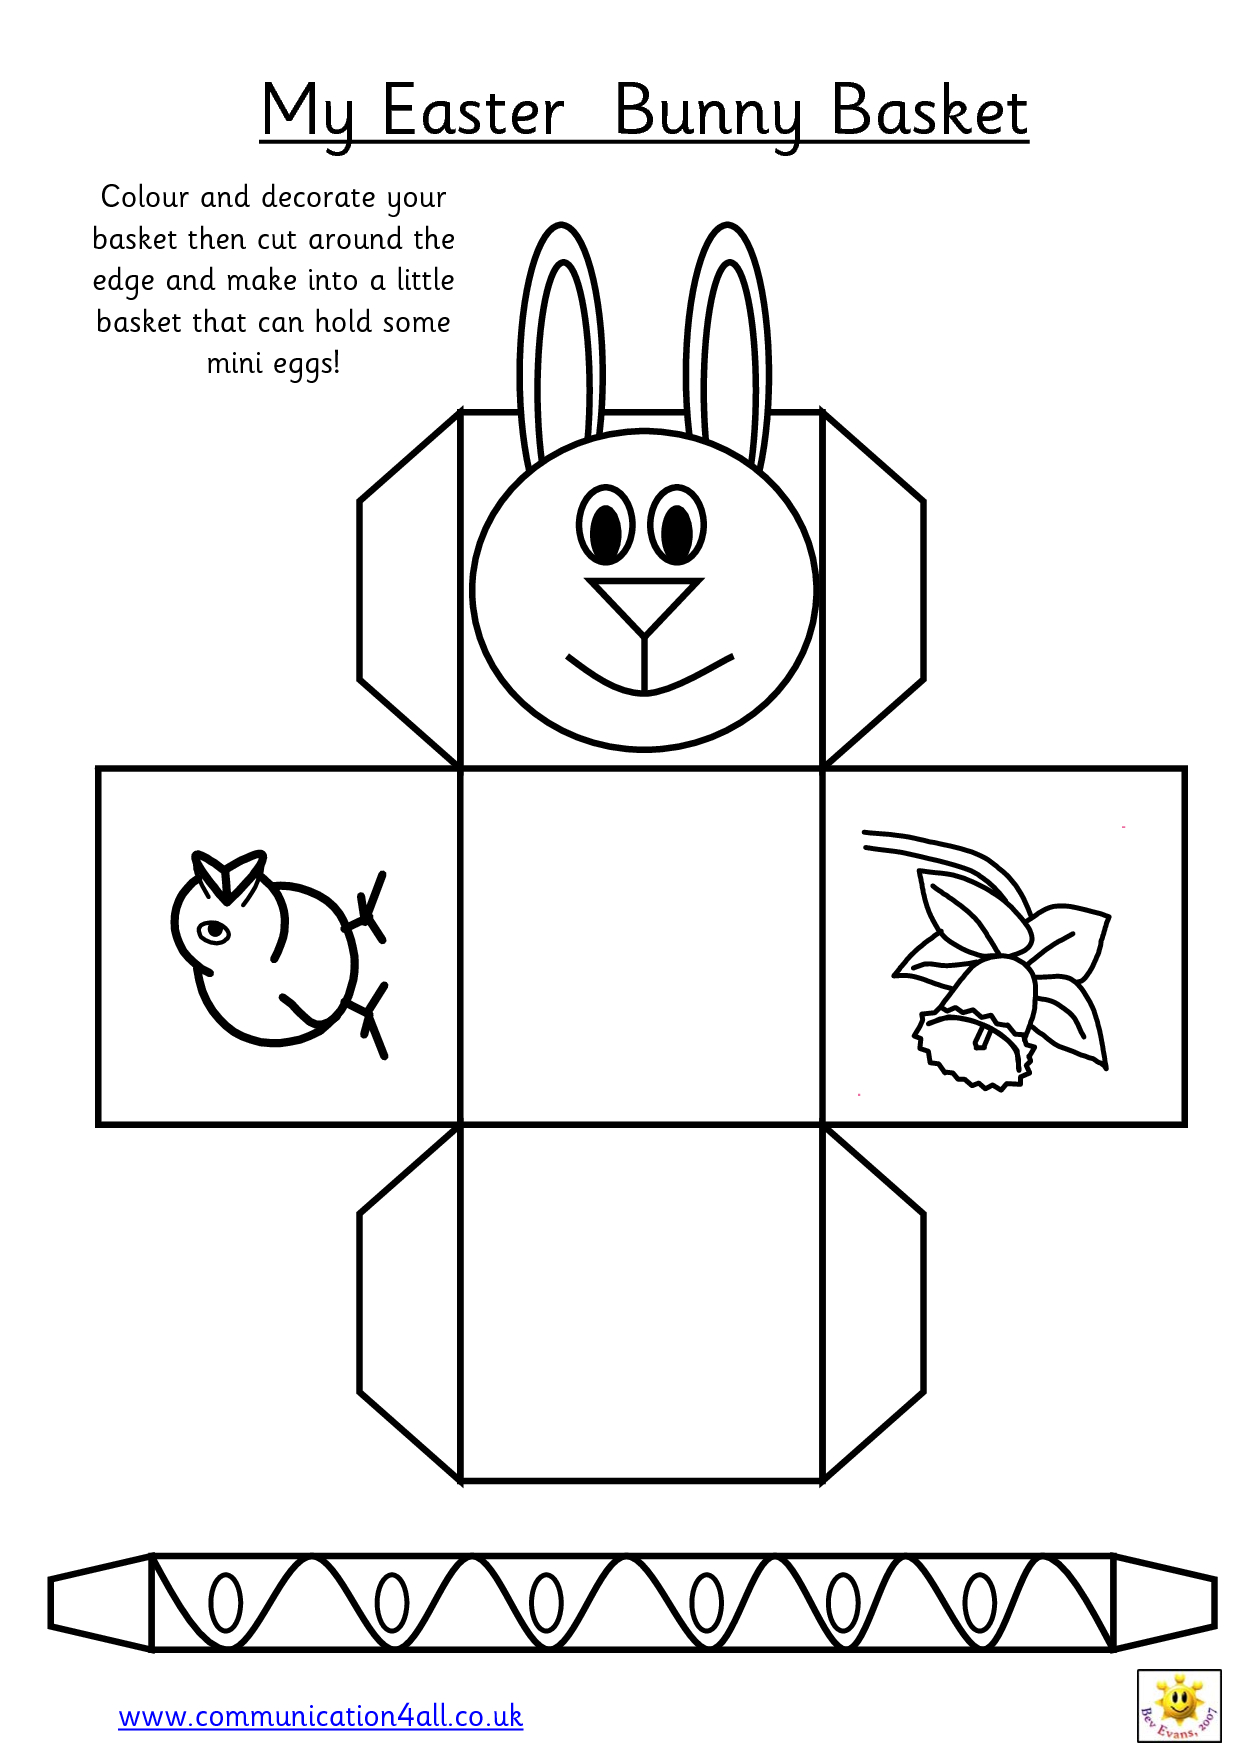 Best Free Printable Easter Basket Templates – Happy Easter - Free Printable Easter Baskets